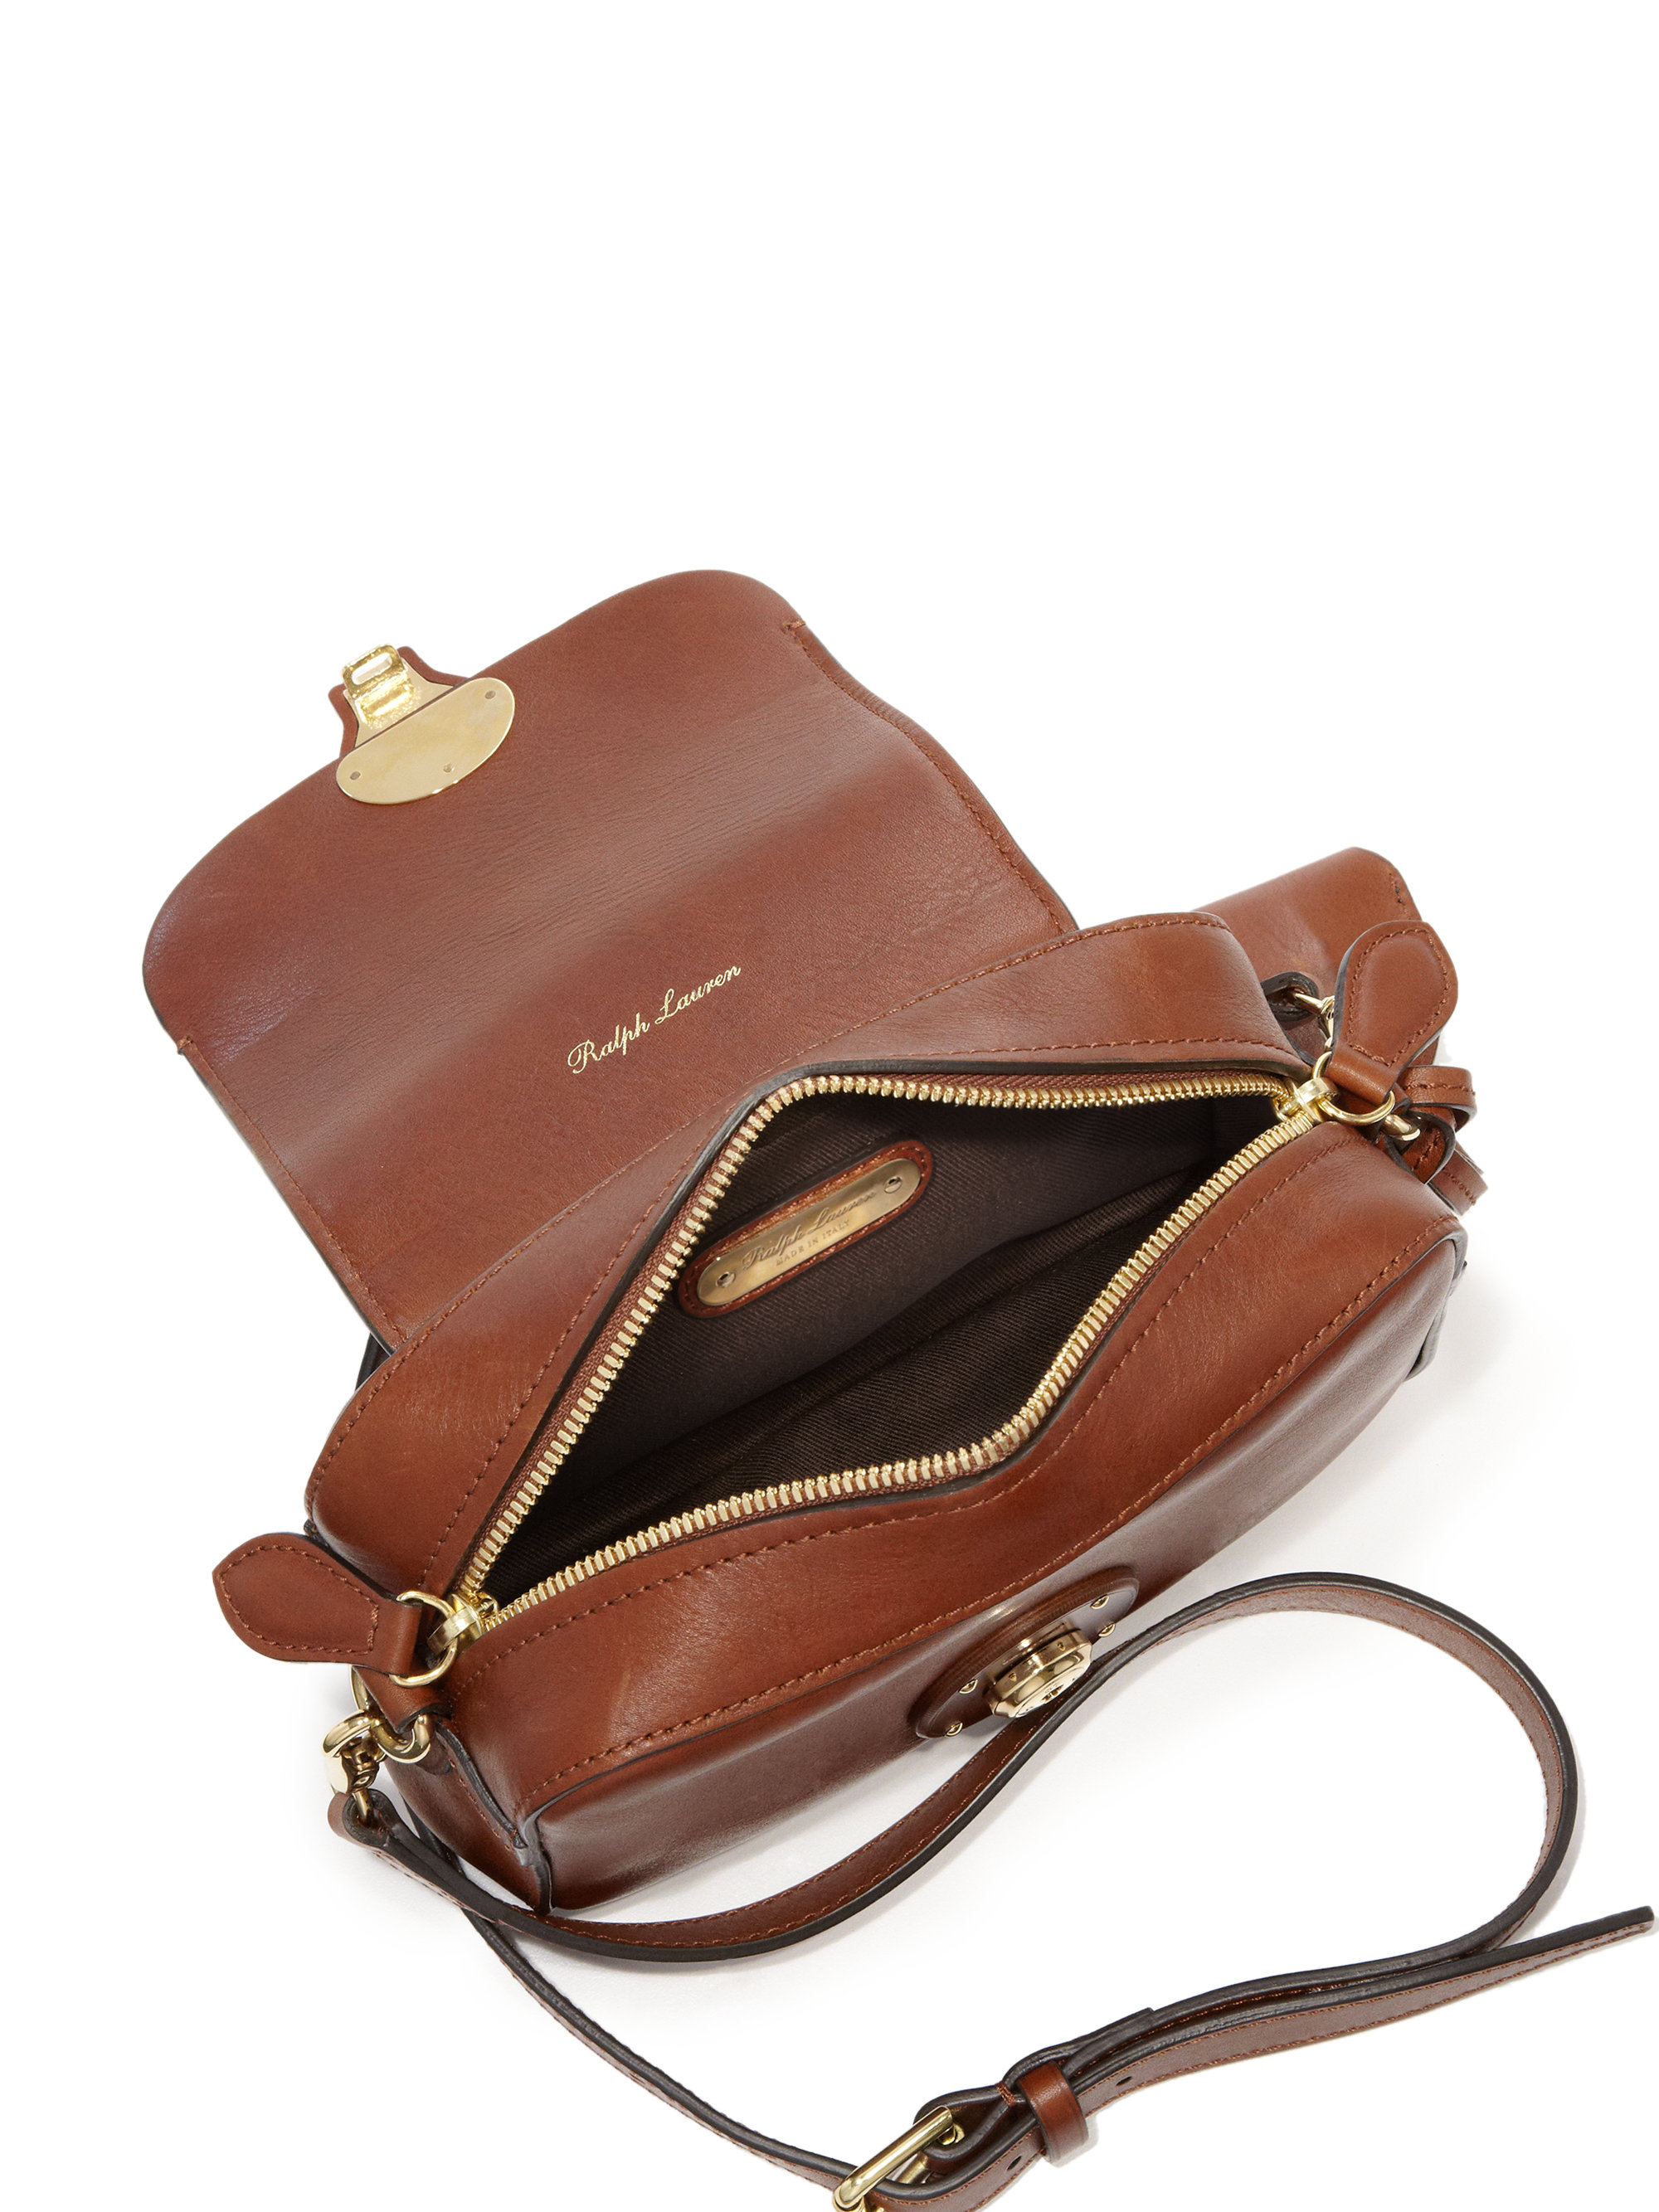 68474436f5 Lyst - Ralph Lauren Ricky Small Leather Zip Crossbody Bag in Brown